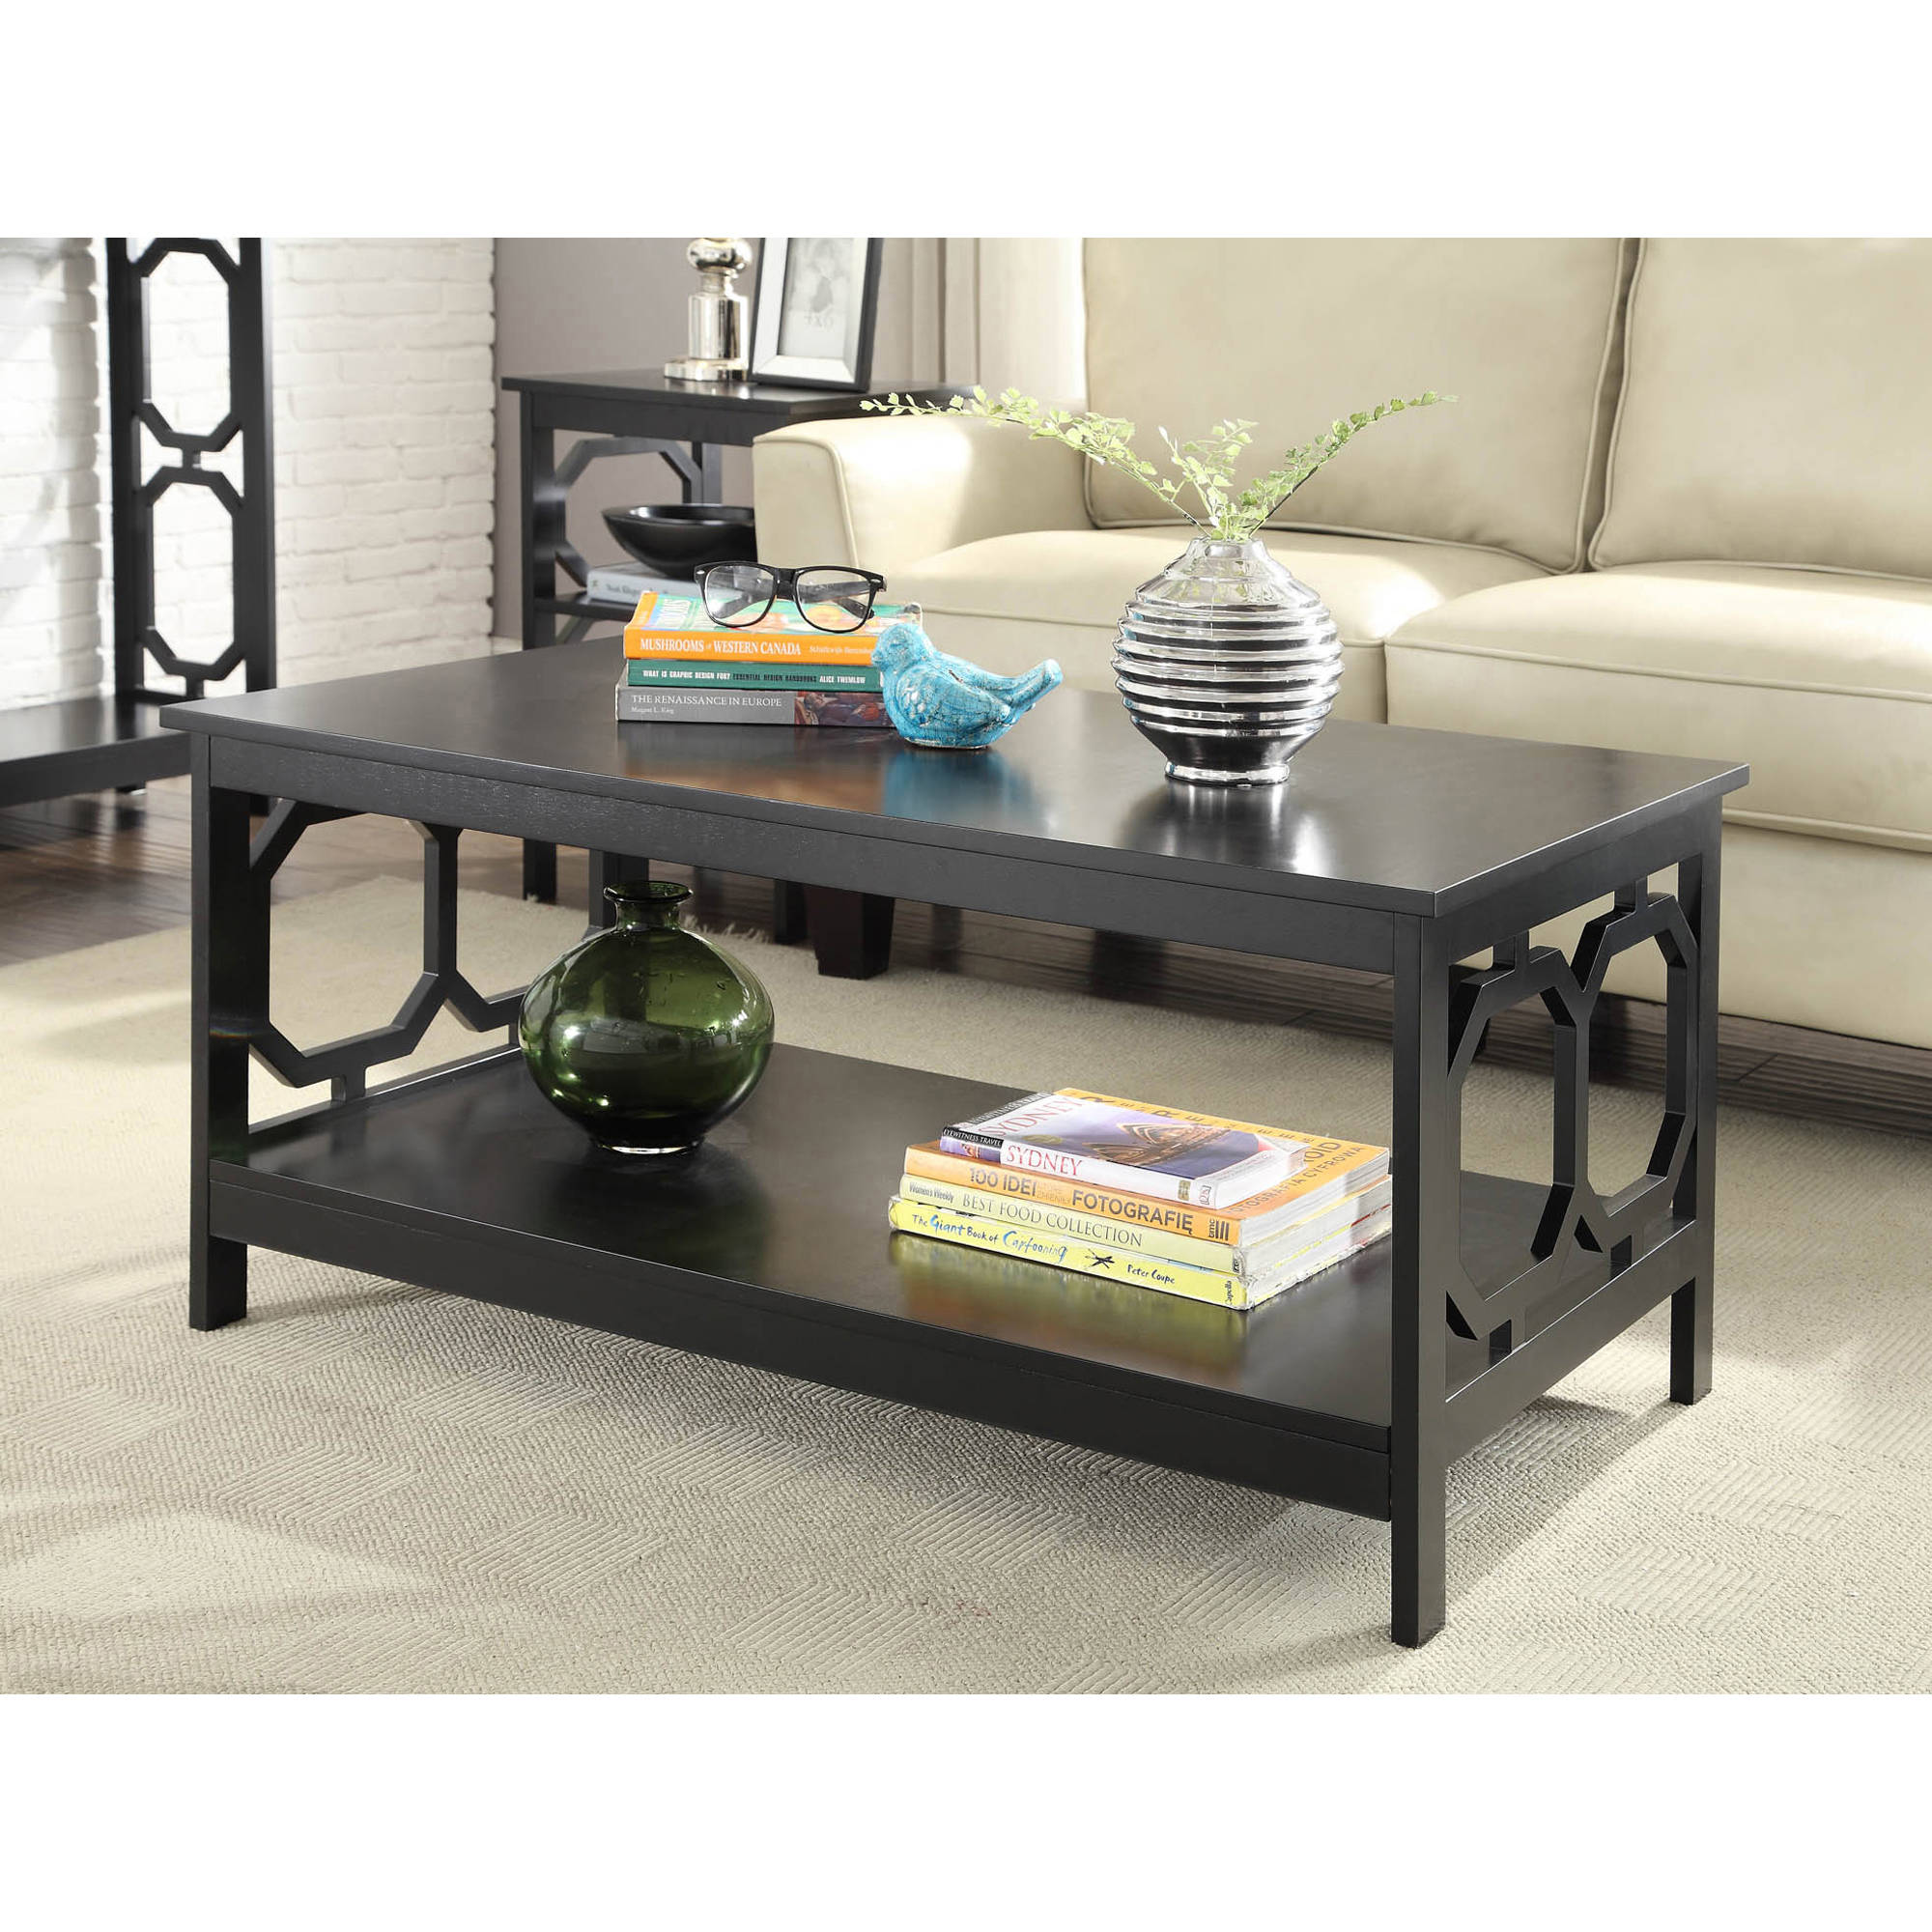 Walmart Coffee Tables: Dorel Home Faux Marble Lift Top Coffee Table